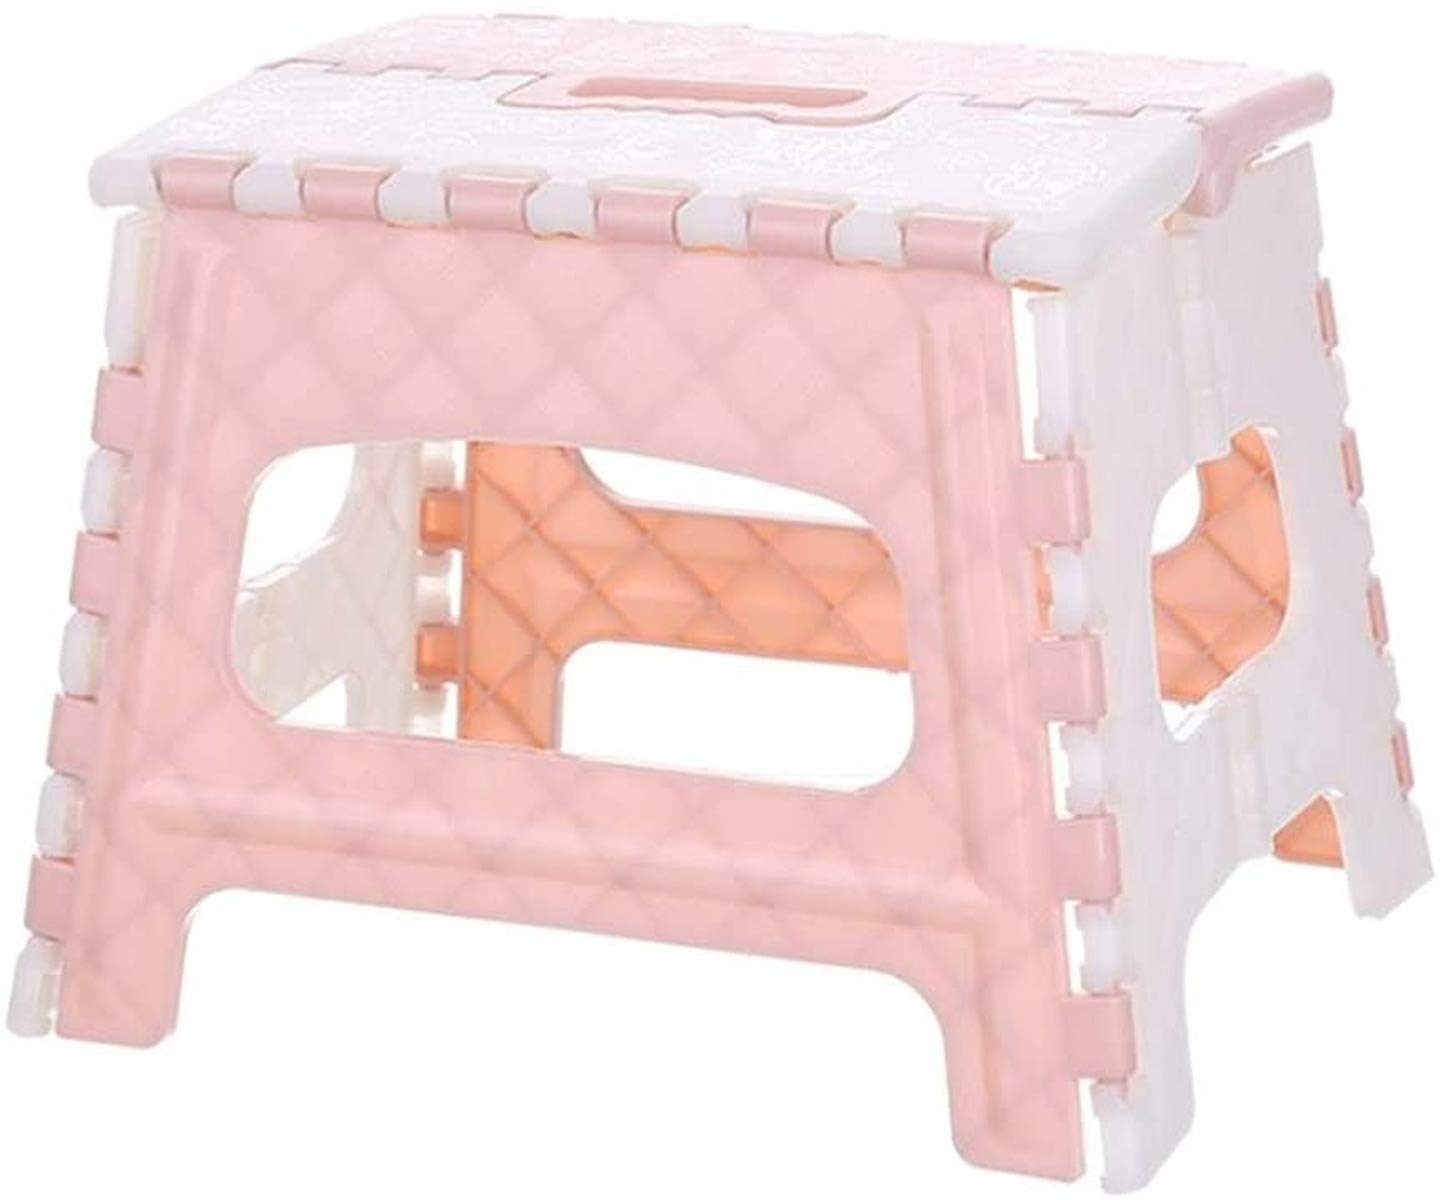 Non Slip Folding Step Stool - Portable Footstool for Kids Toddlers Adults Outdoor Camping Chair Foldable Stepladders Step Stool for Kitchen, Bathroom, Bedroom (Pink,9inches)